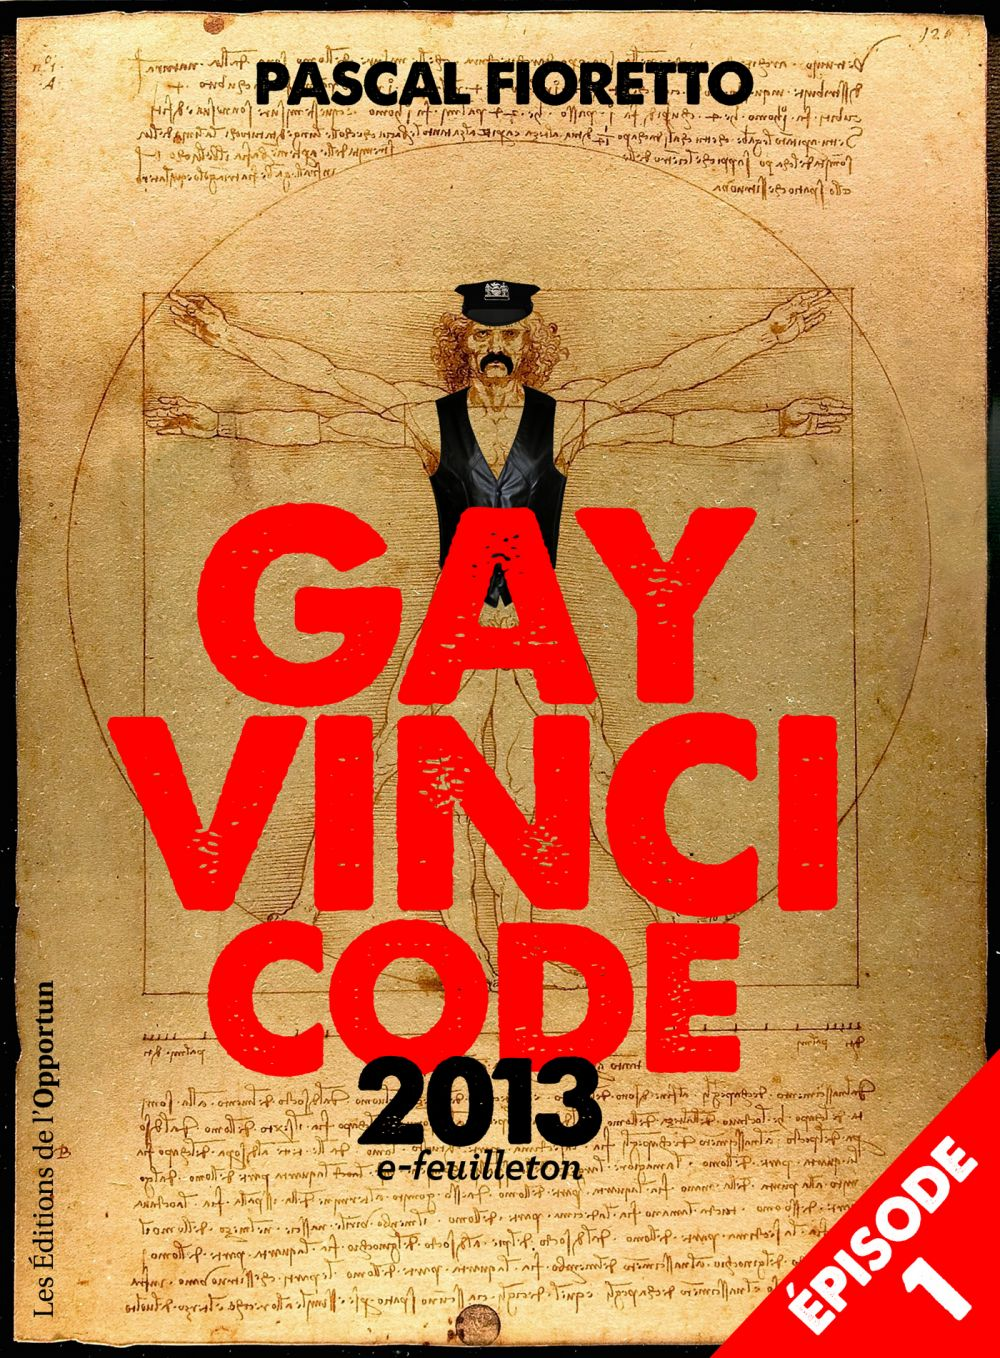 Gay Vinci code 2013 (Episode 1)